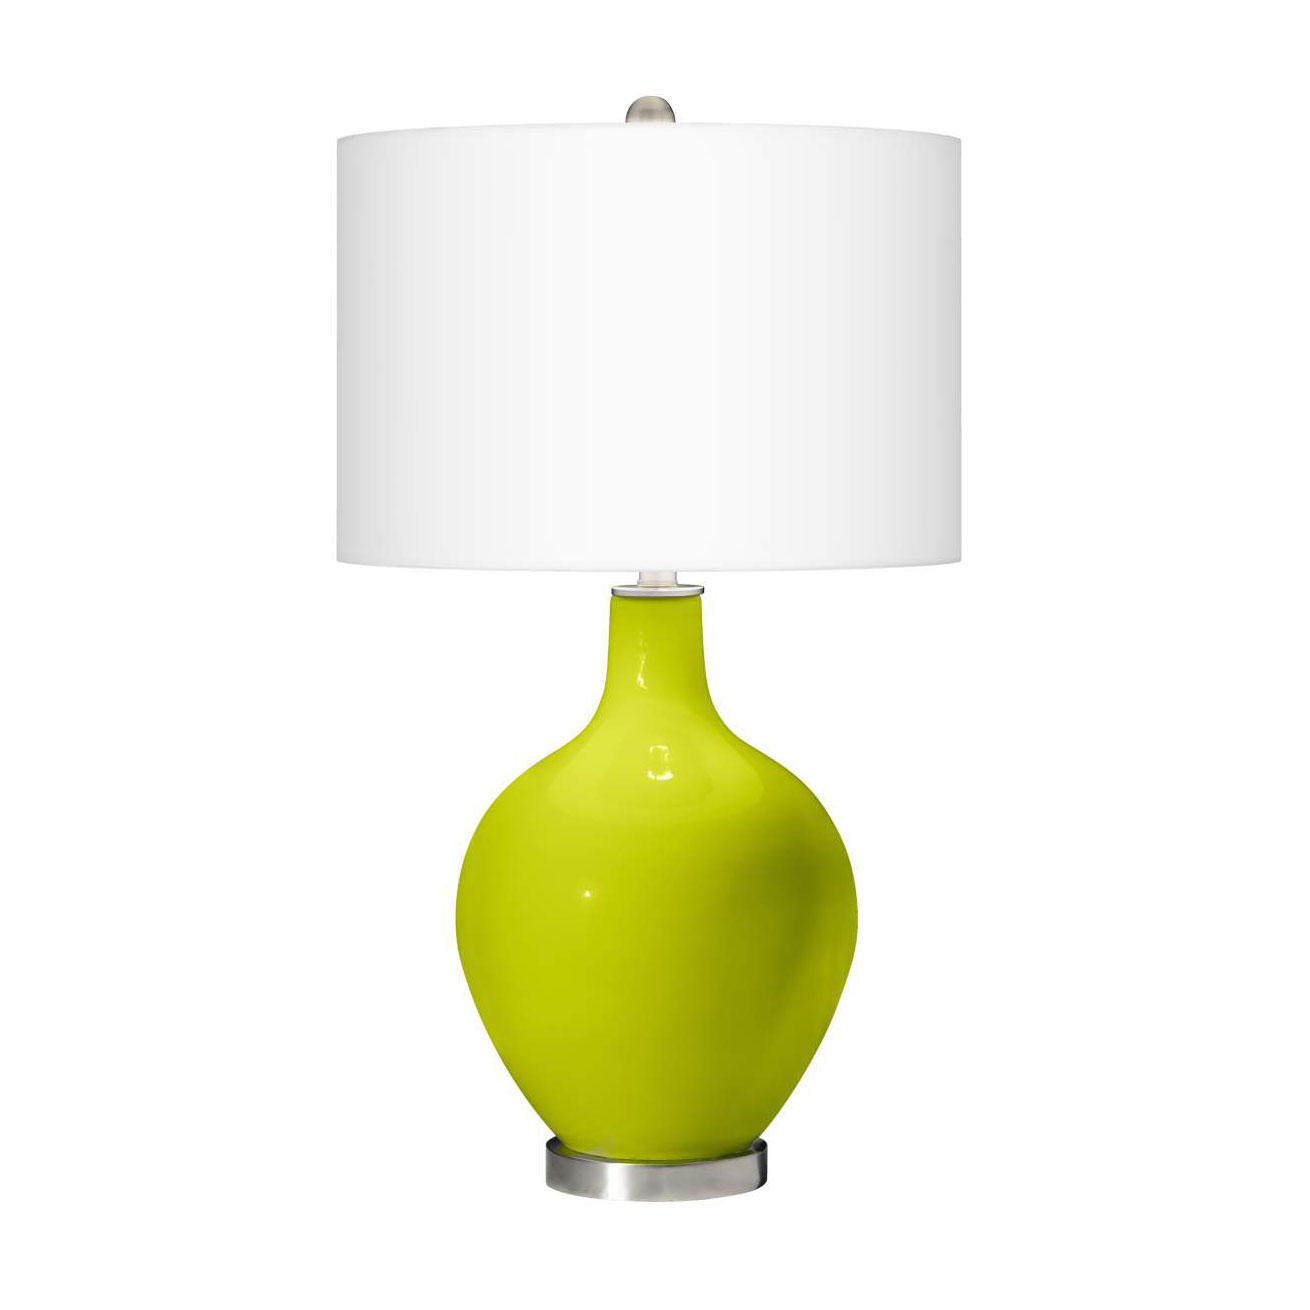 Lime Table Lamp: Br Lamps As The Green Table In Beauty Of Art,Lighting